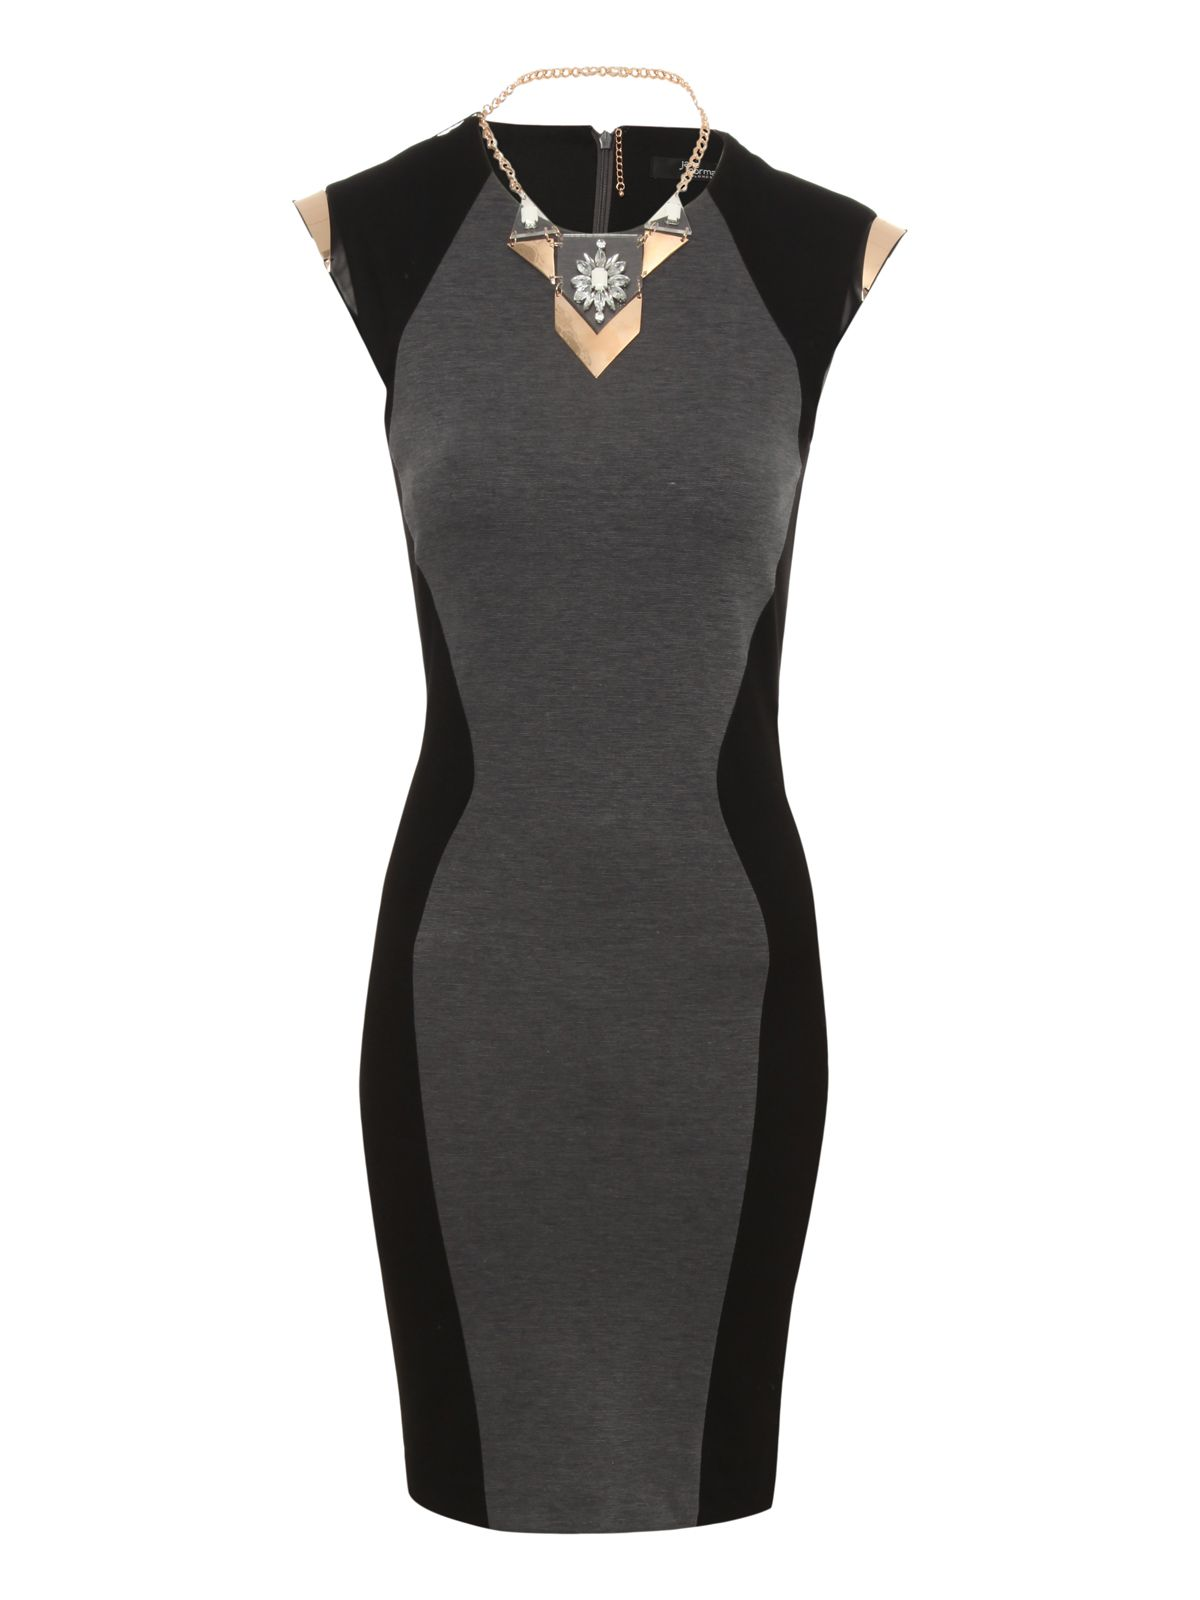 Illusion necklace bodycon dress